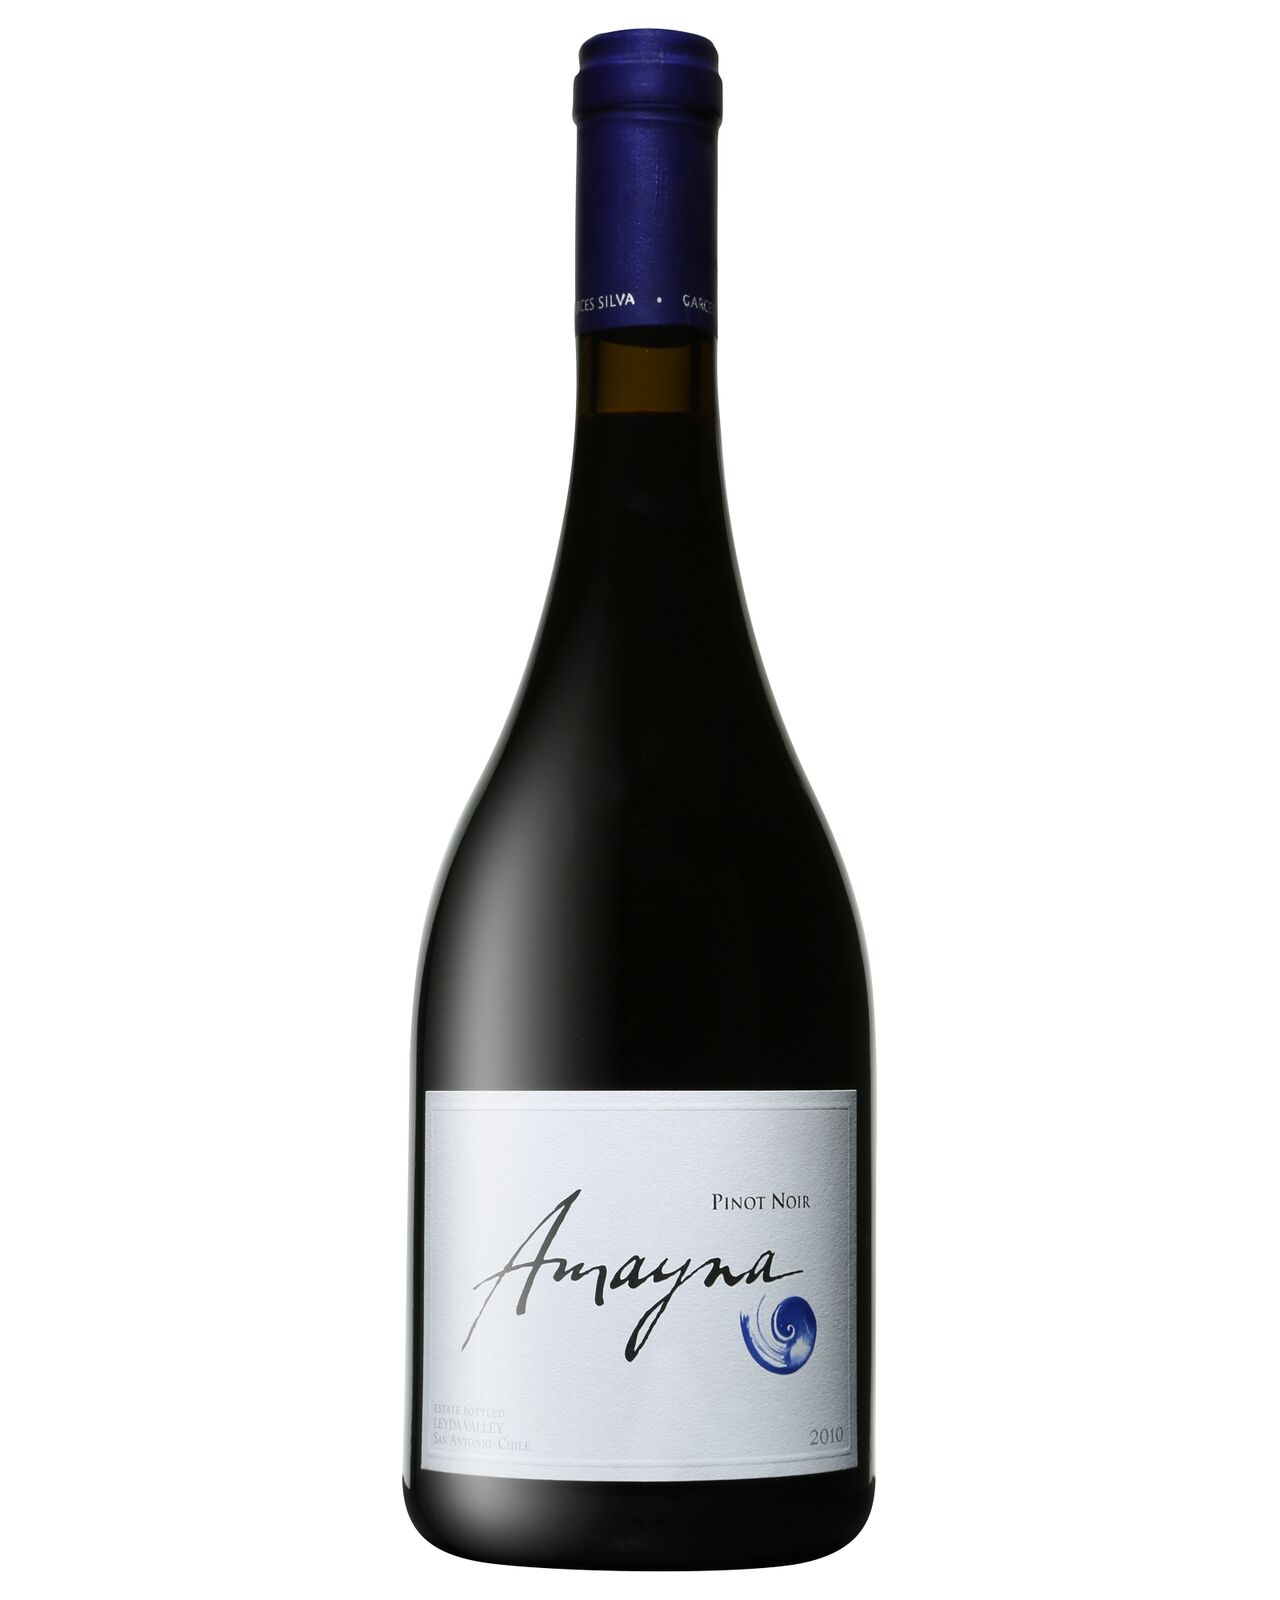 Amayna Pinot Noir 2010 bottle Dry Red Wine 750mL San Antonio Valley